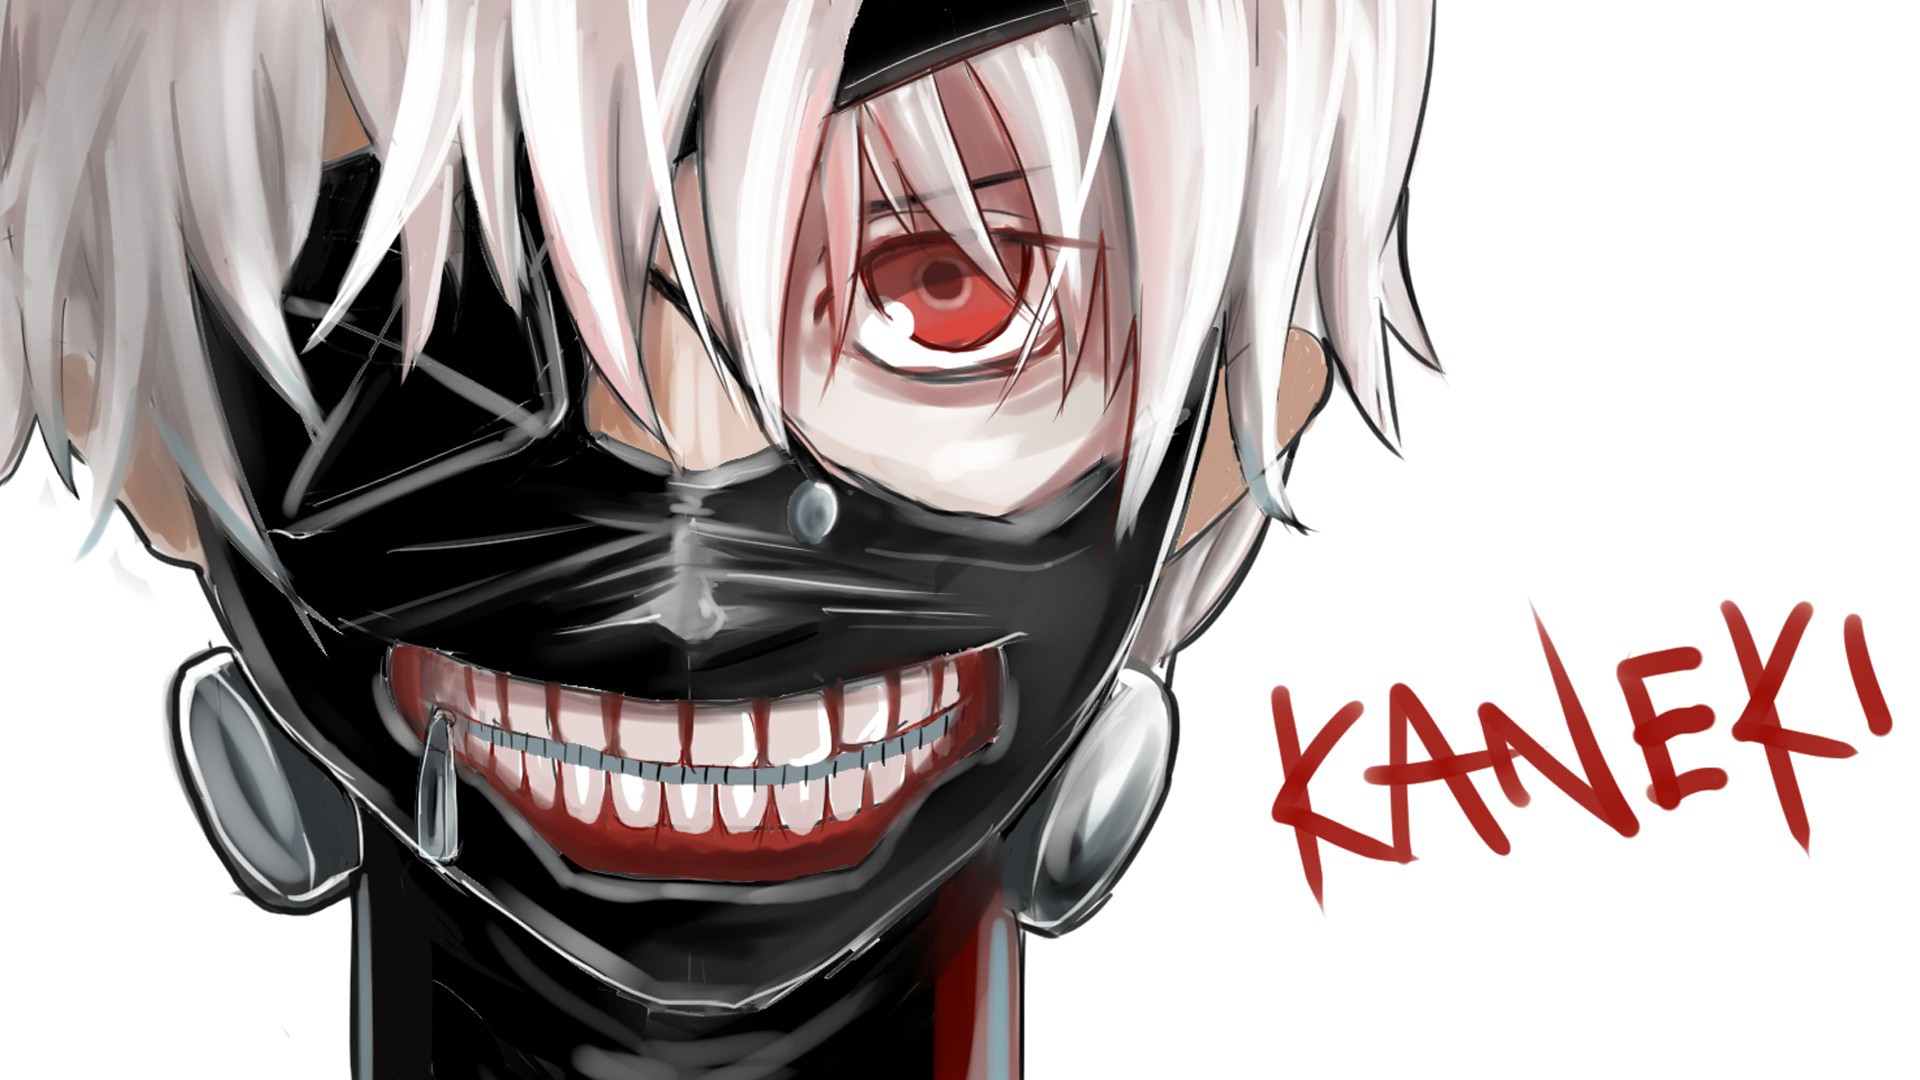 Image for Free Tokyo Ghoul Anime HD Wallpaper  Tokyo Ghoul